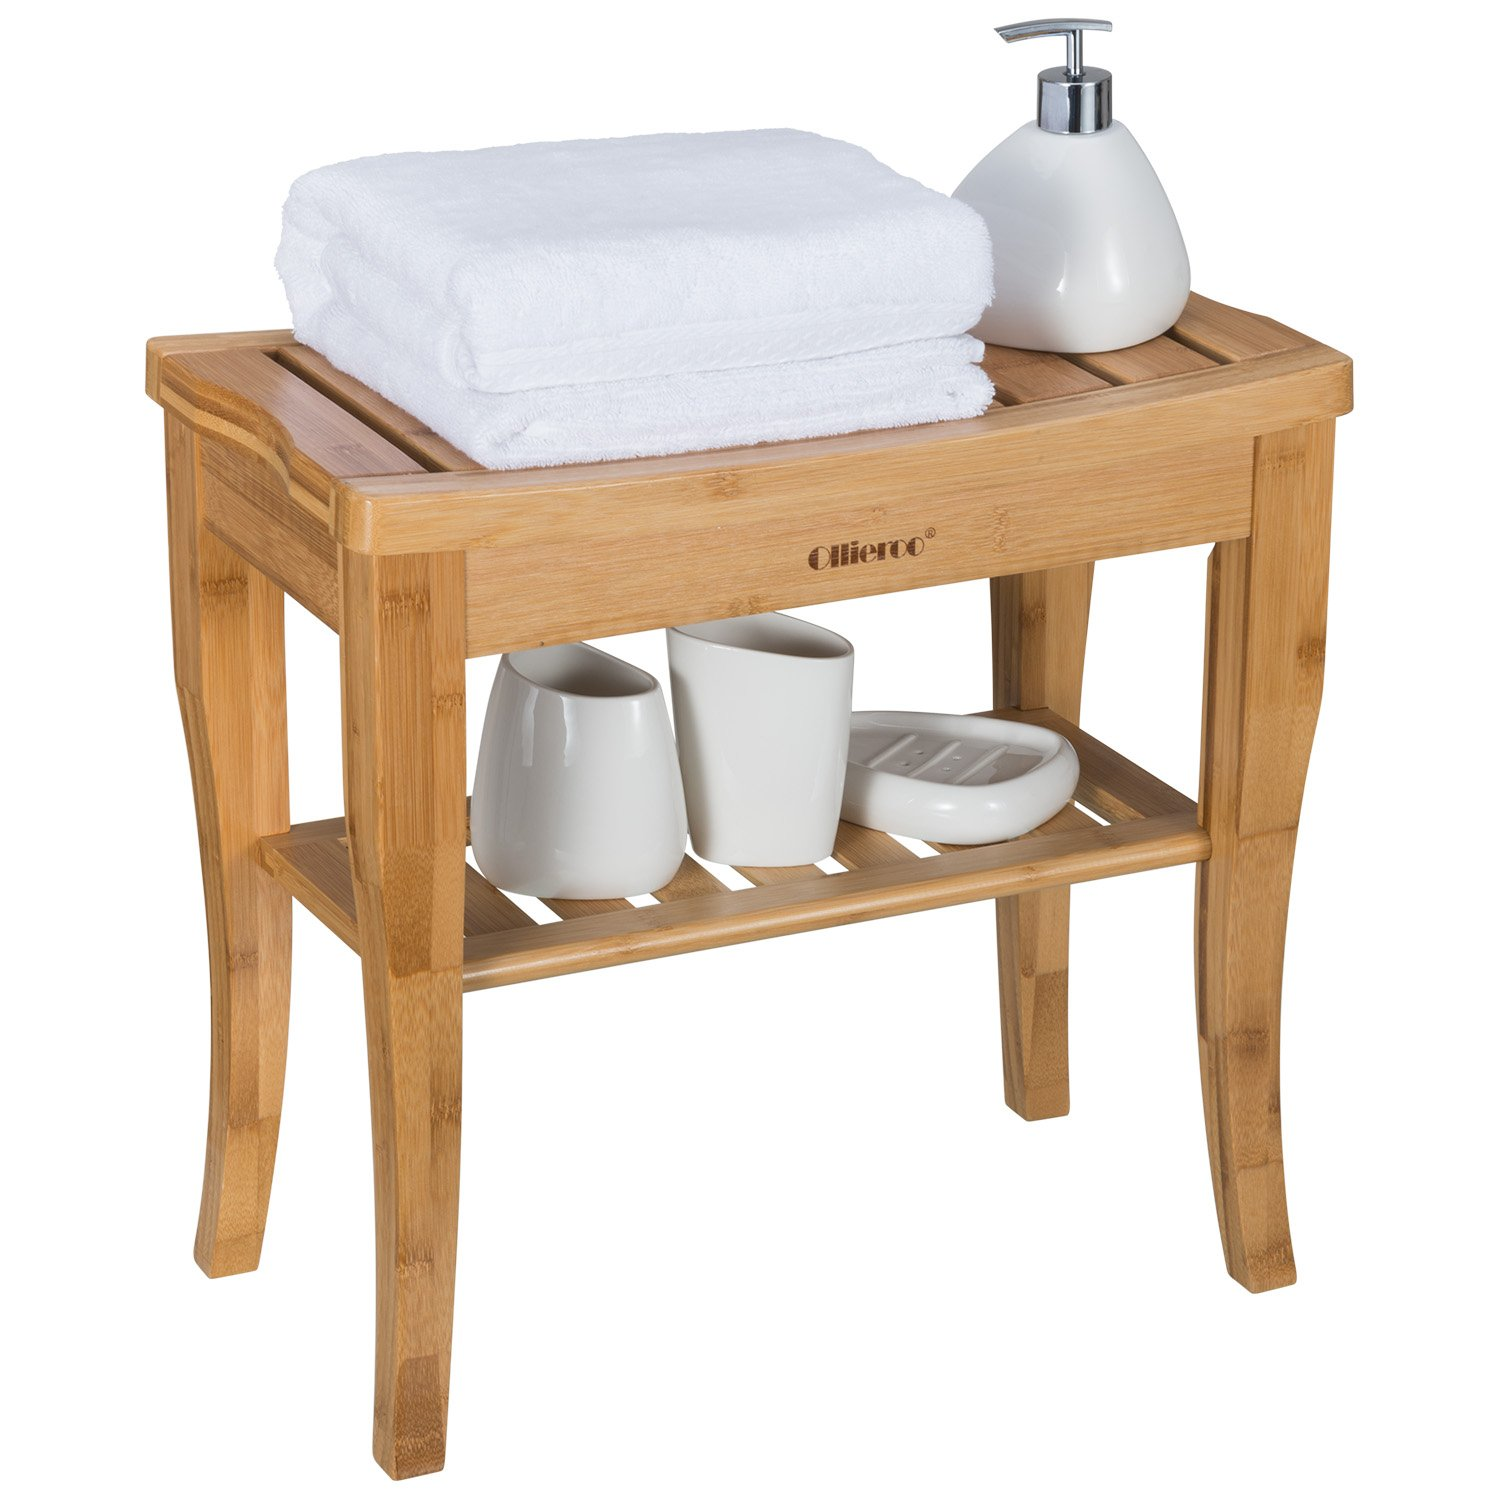 Ollieroo Bamboo Shower Bench Seat Wooden Spa Bench Stool with Storage Shelf, Bath Seat Bench Stool Bath & Shower Transfer Benches by Ollieroo